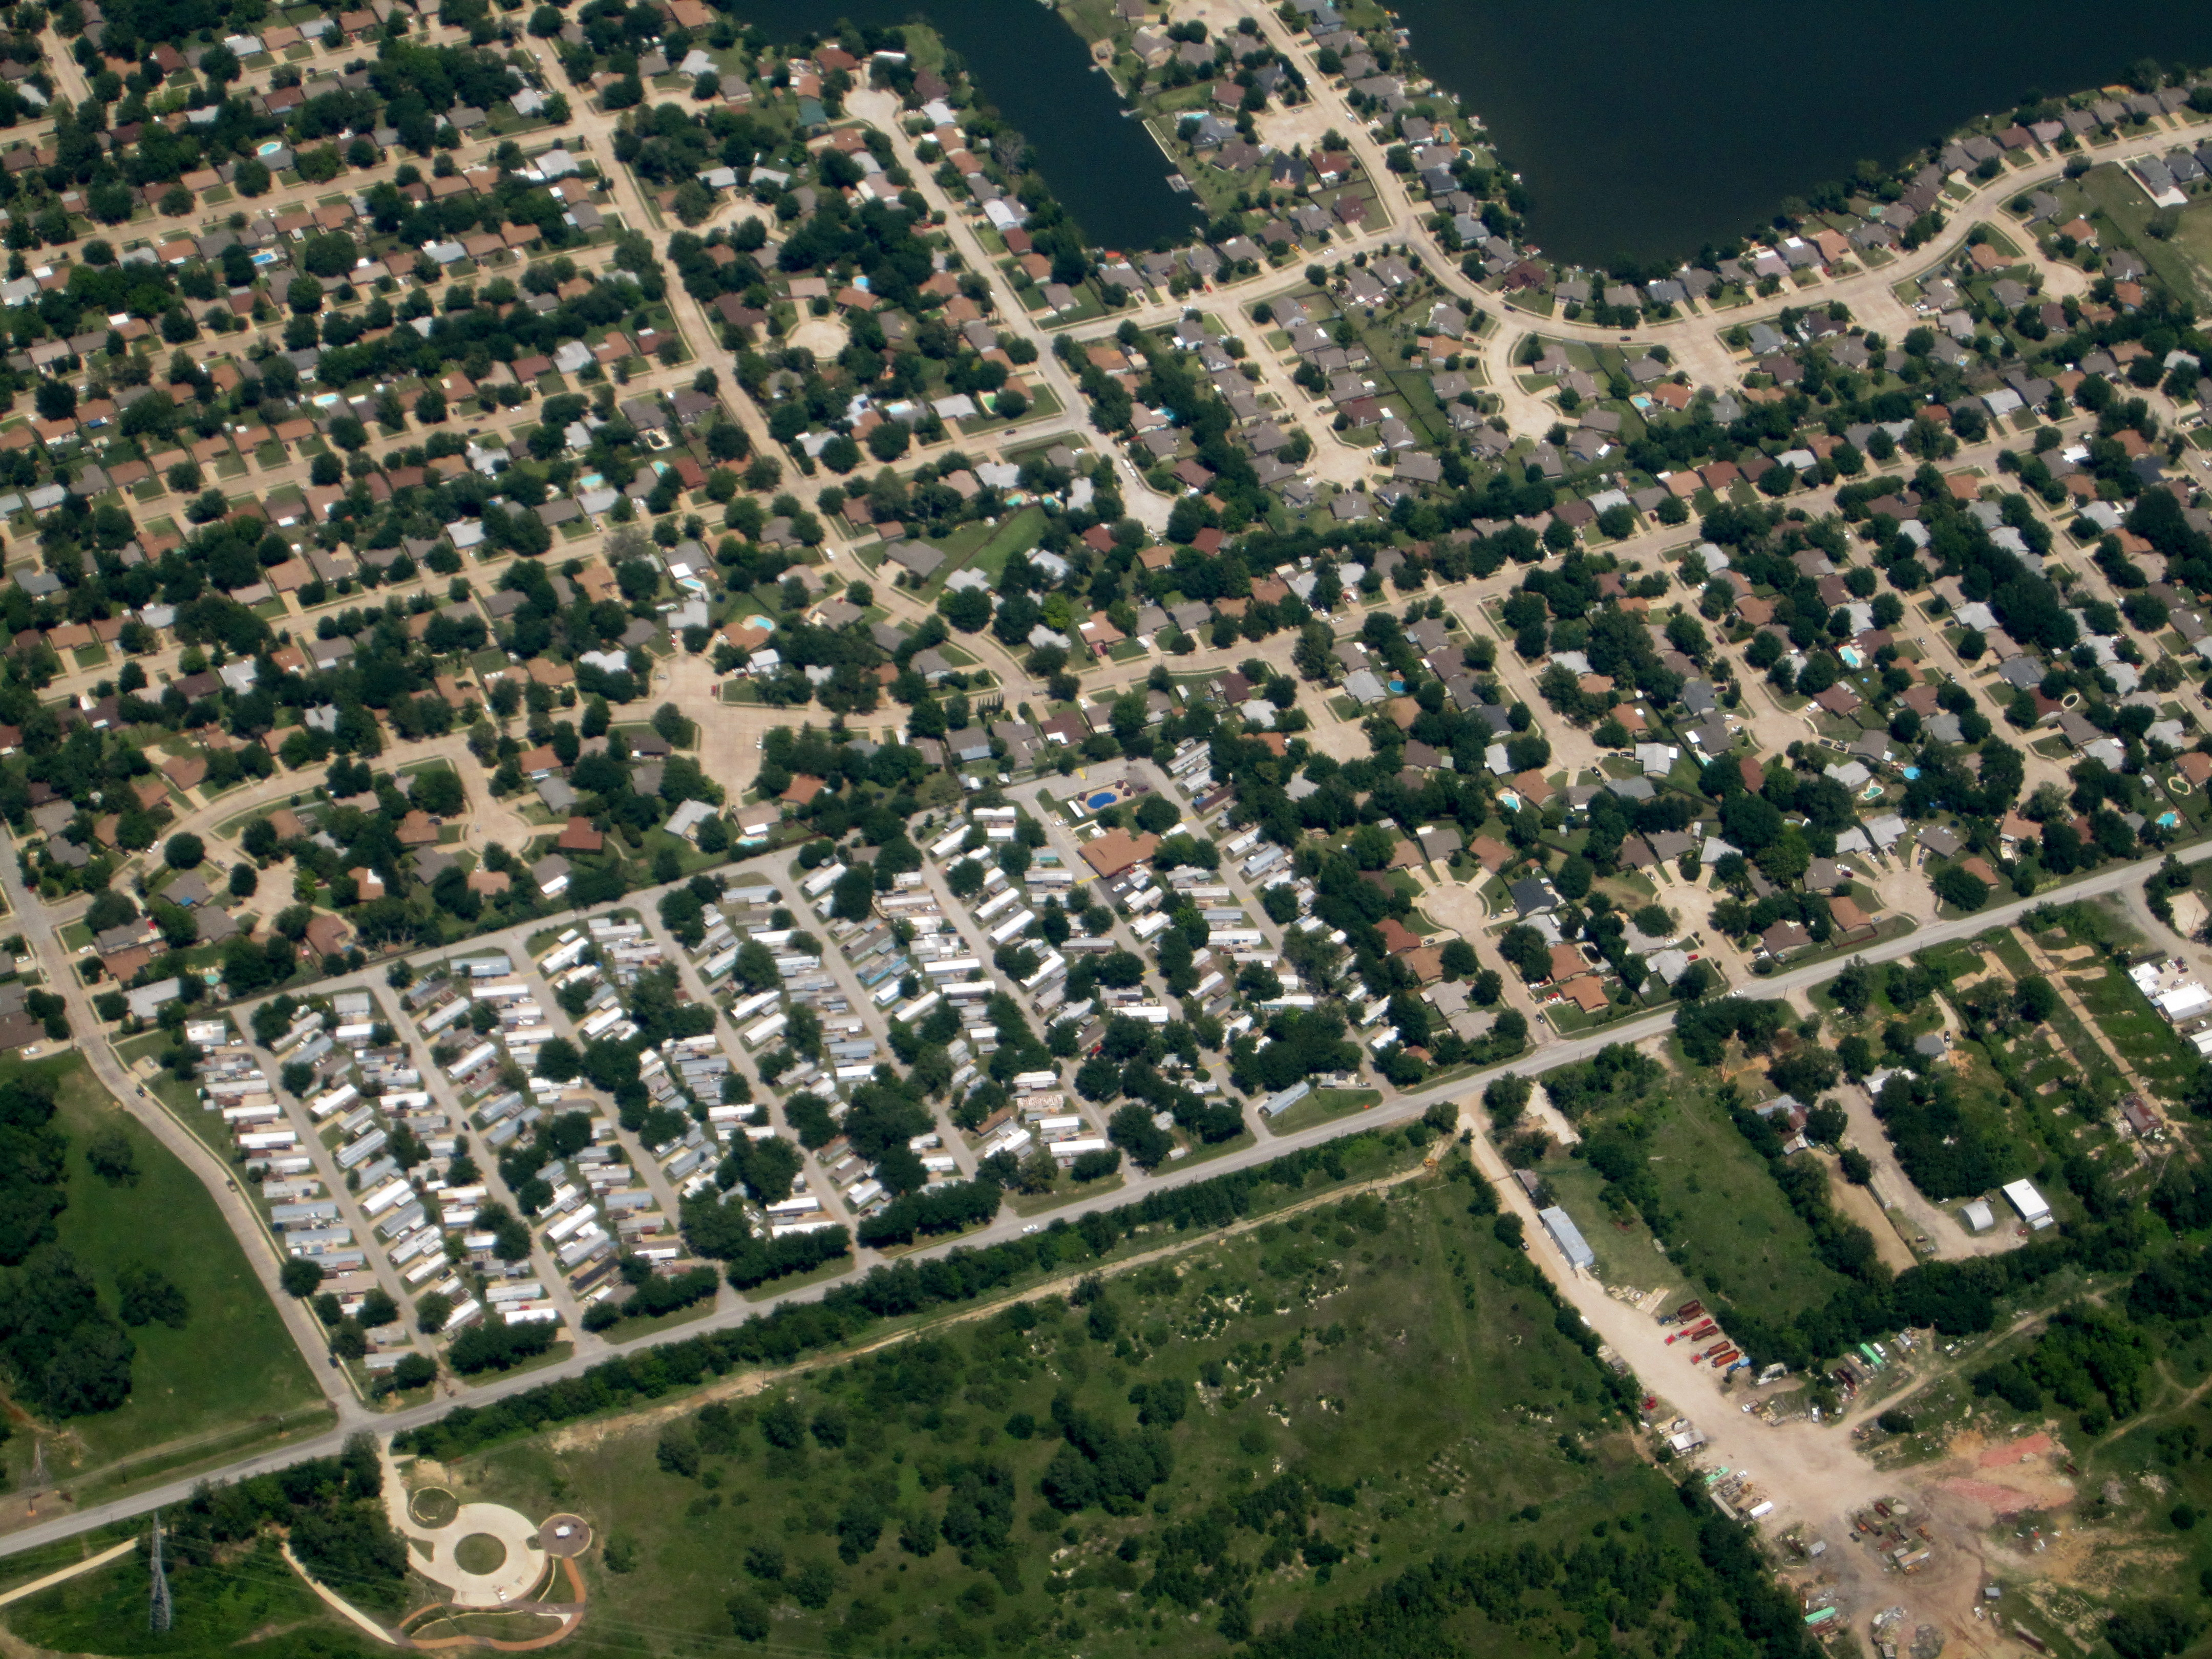 Mobile_home_park,_aerial_(6044616136) Mobile Home Park Aerial View Florida on mobile home parks in havelock nc, office park aerial, airport aerial, mobile home 55 plus communities,